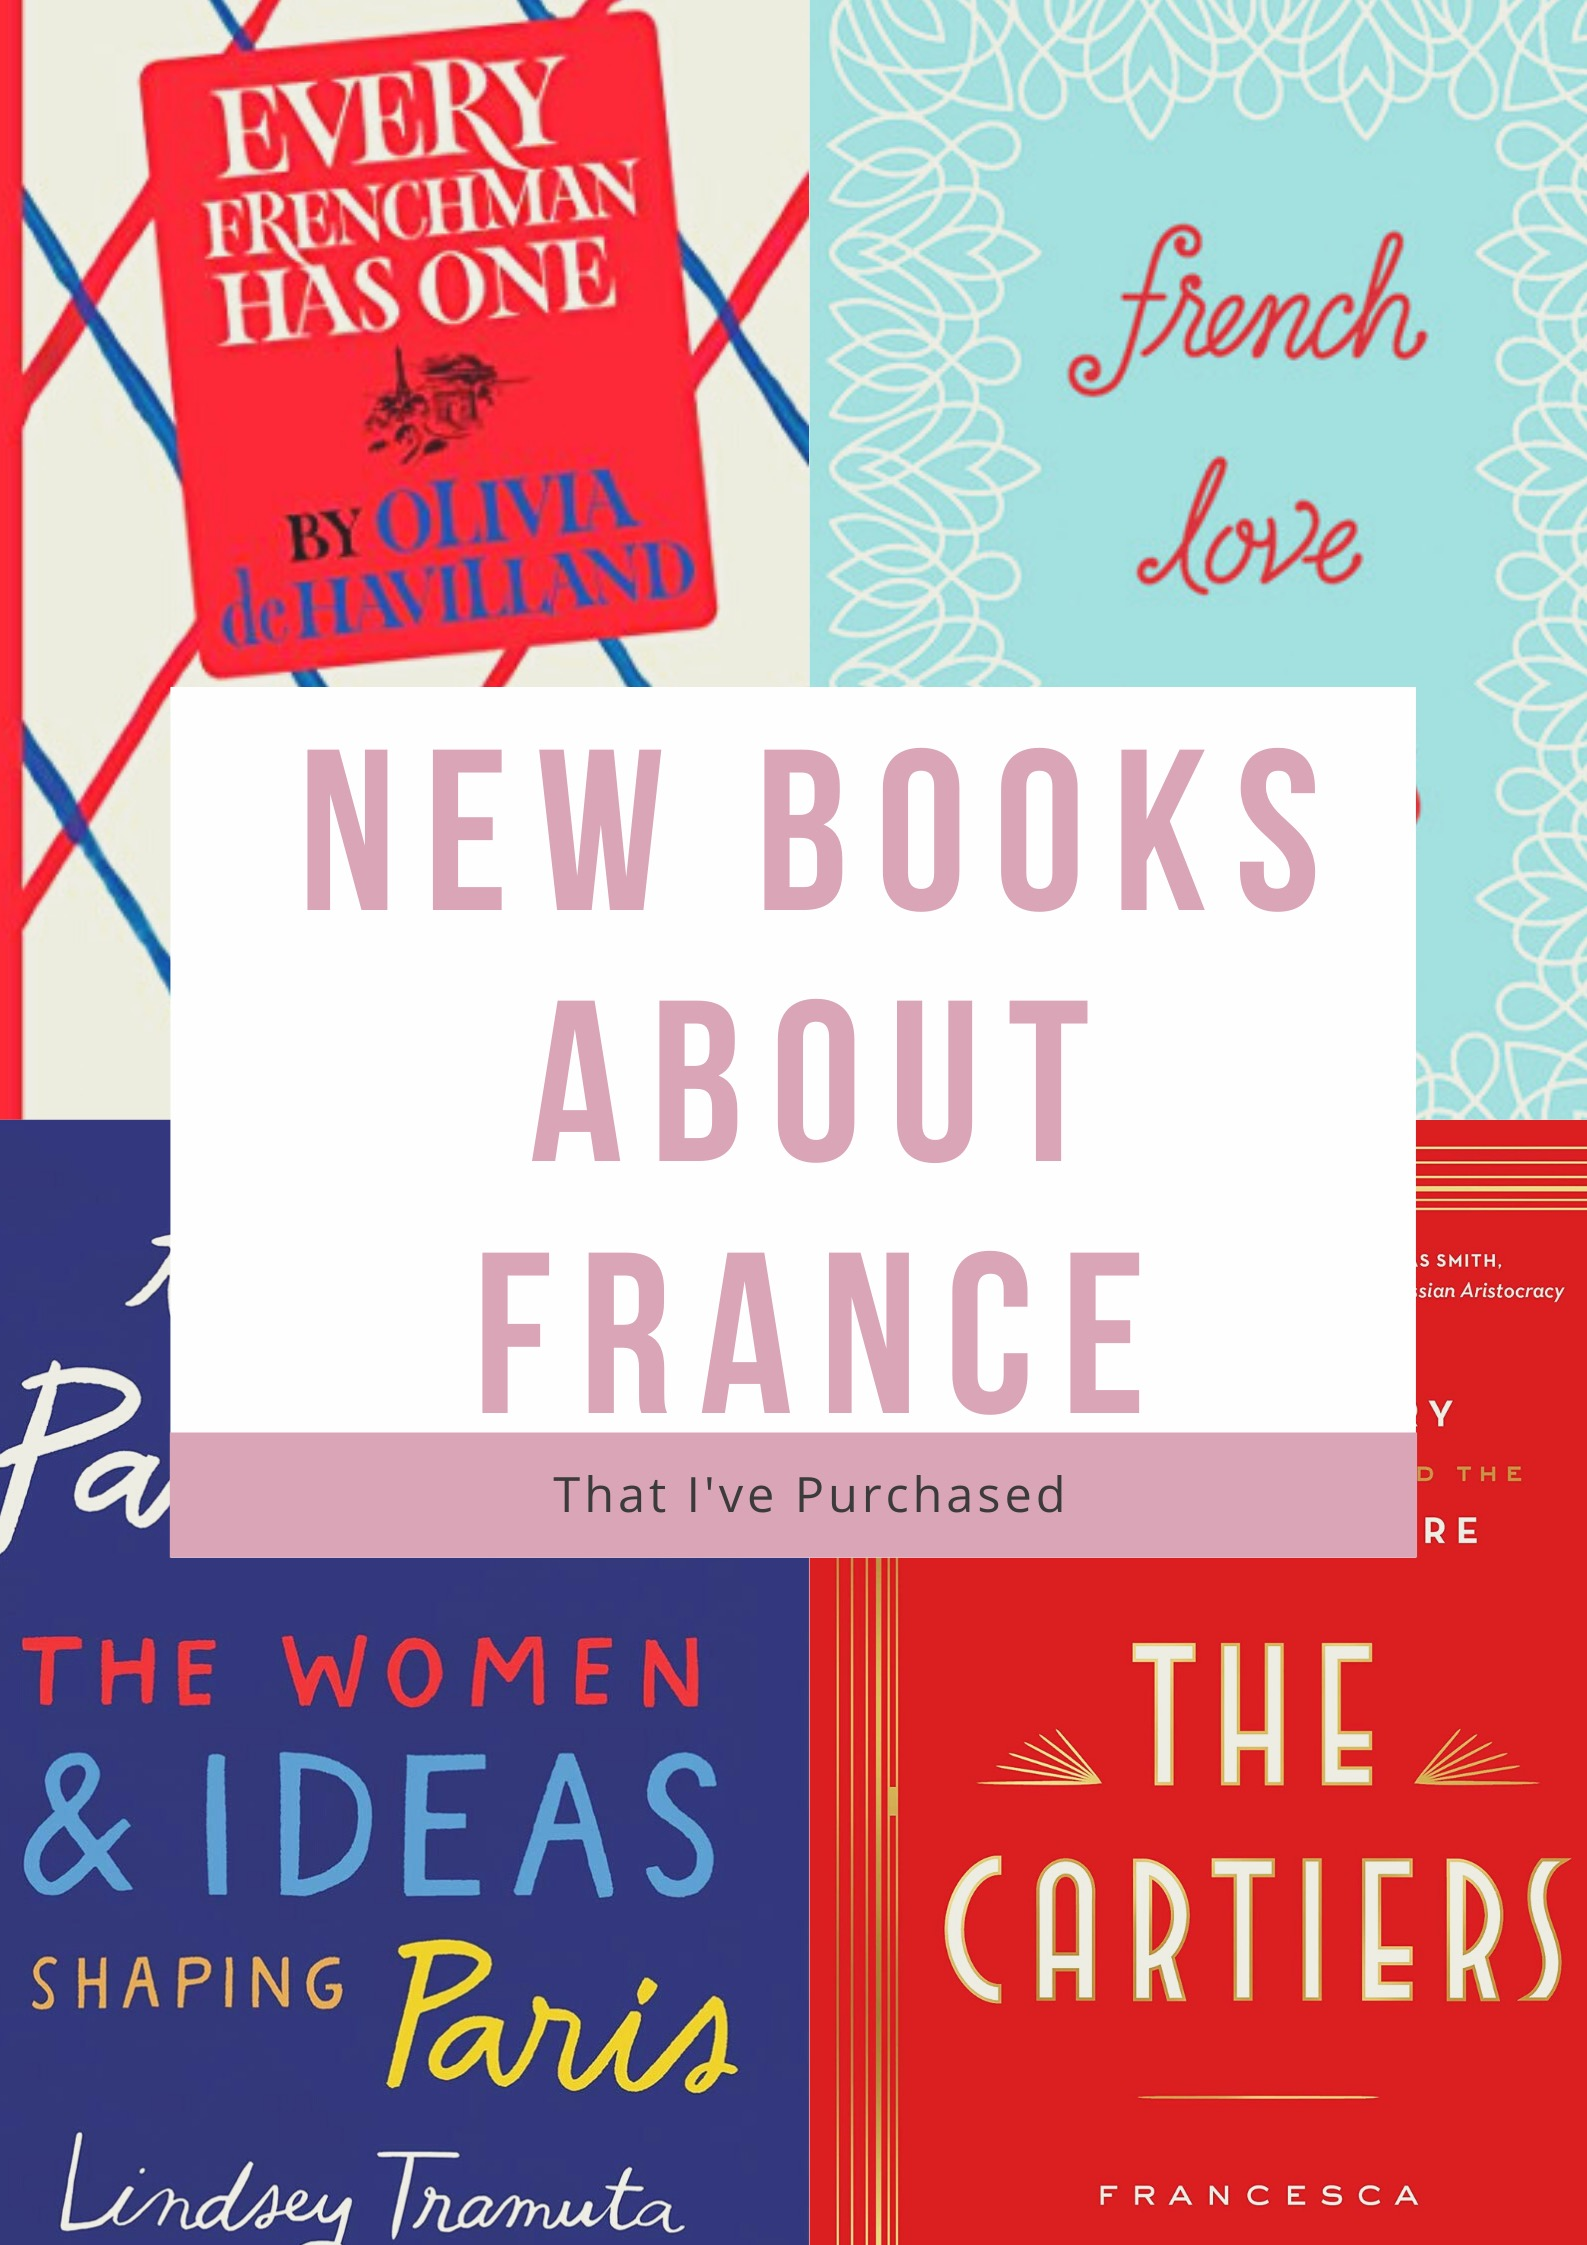 New books about France that I've purchased